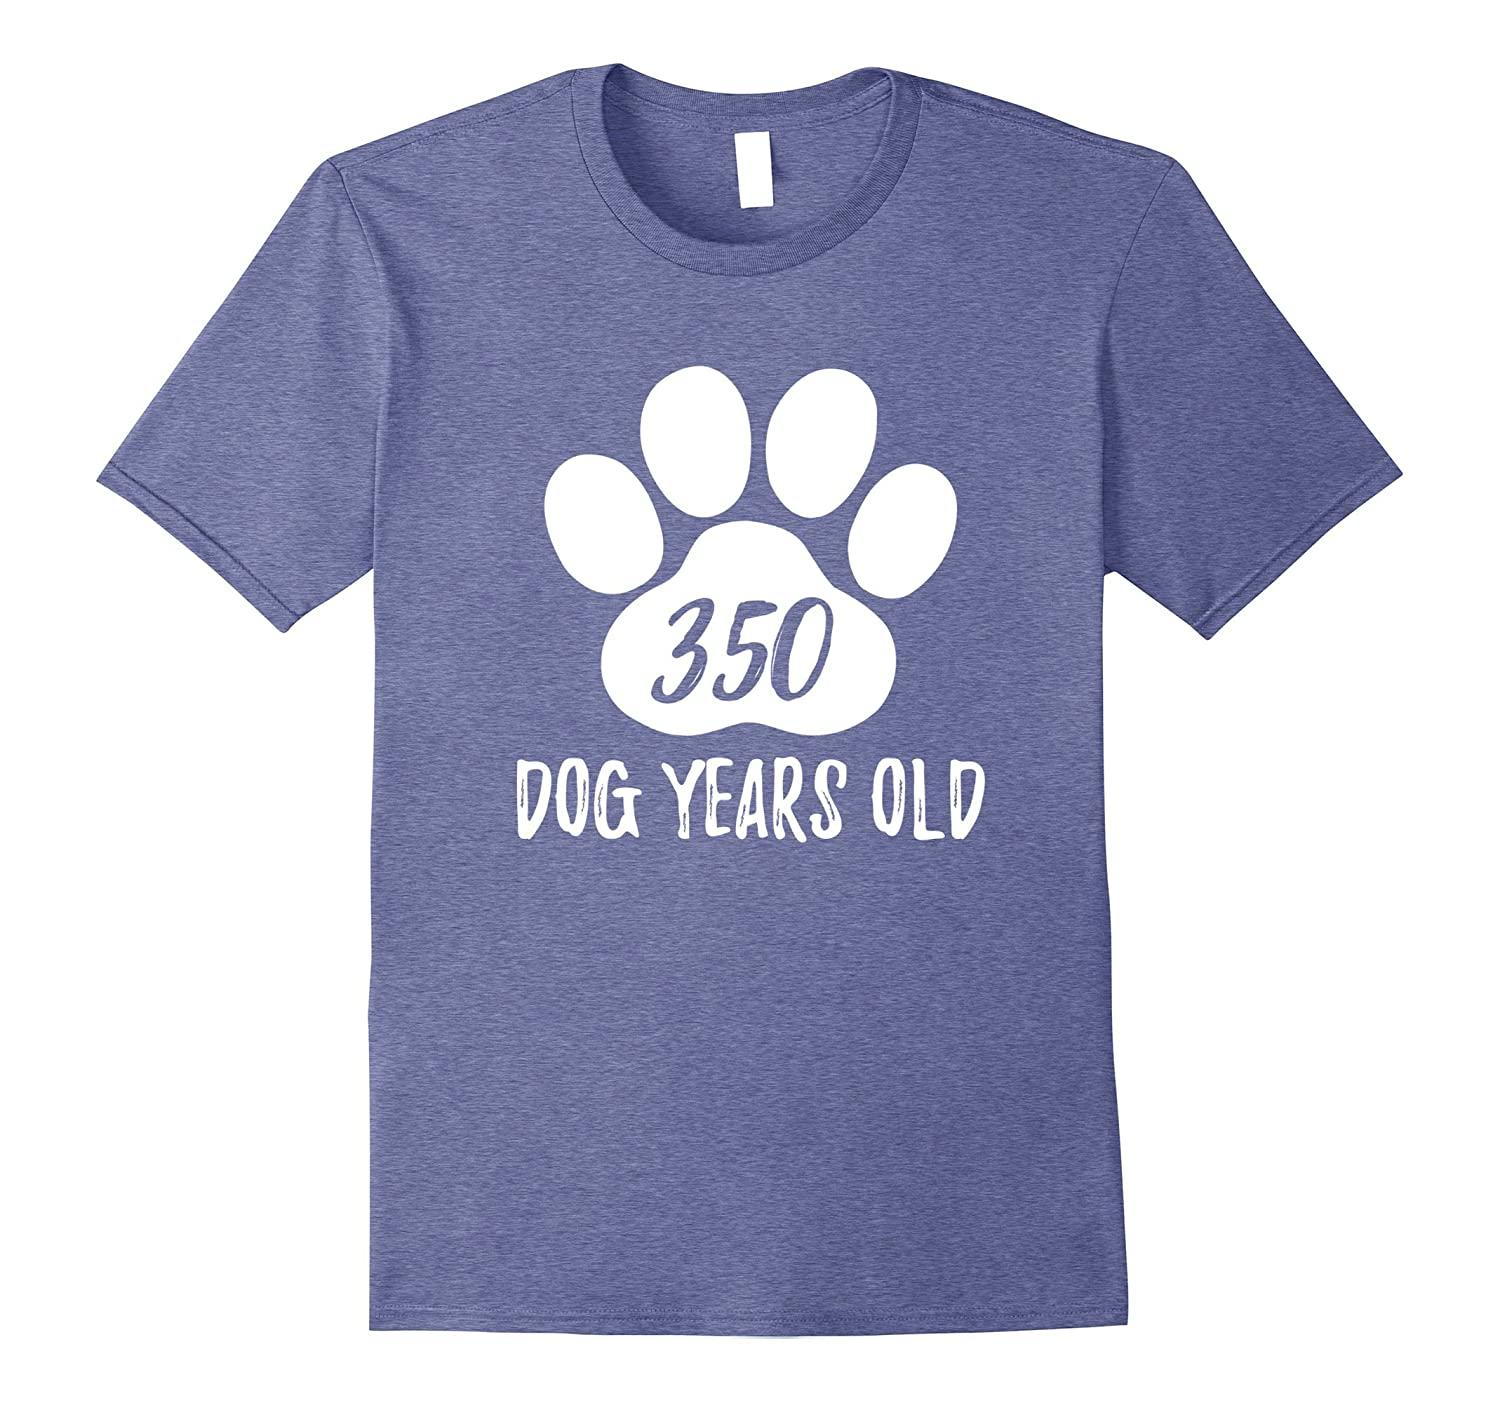 350 Dog Years Old Funny 50th Birthday